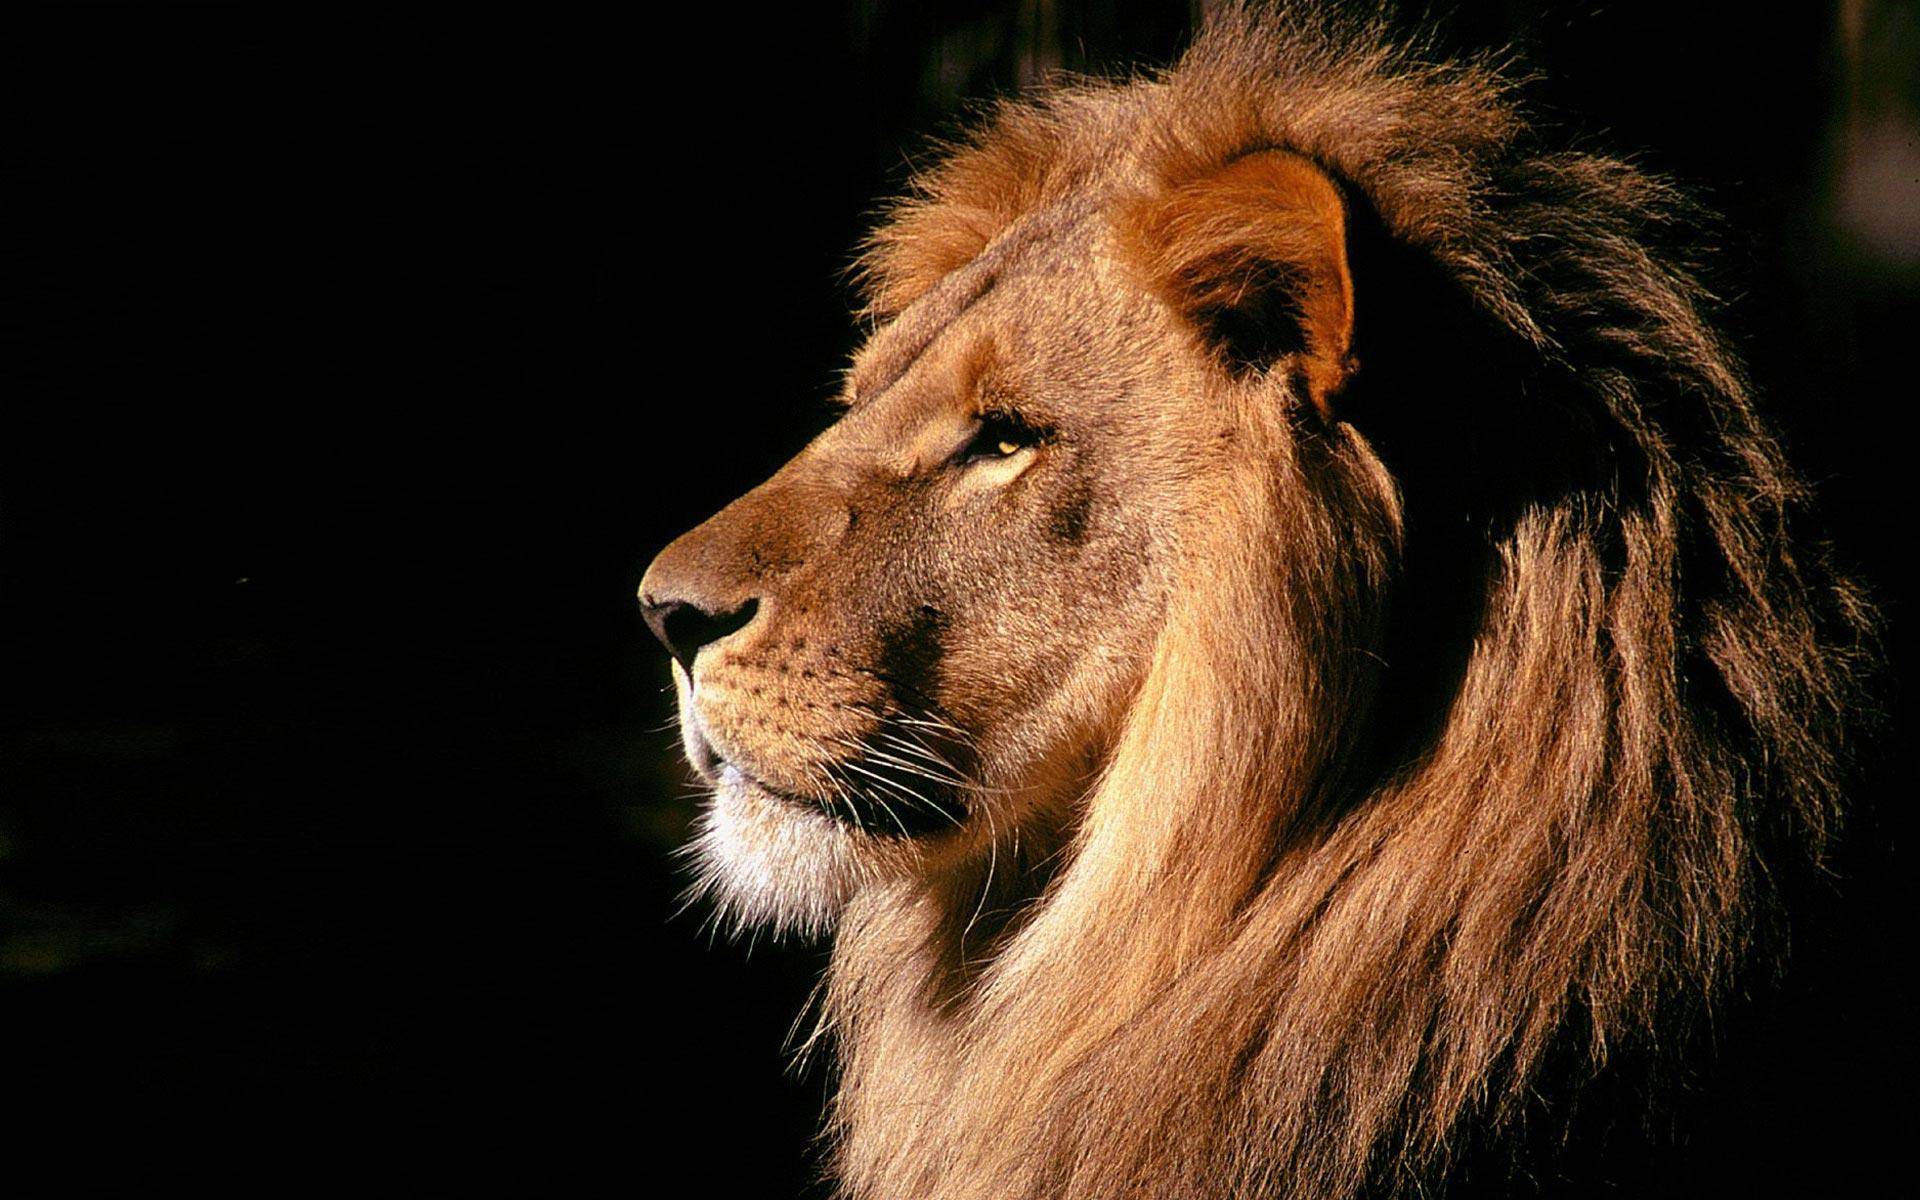 Roaring lion of the majestic look in the Photographs always stands as the Knig of the Jungle in the mind of people and beautiful photographs without doubt.